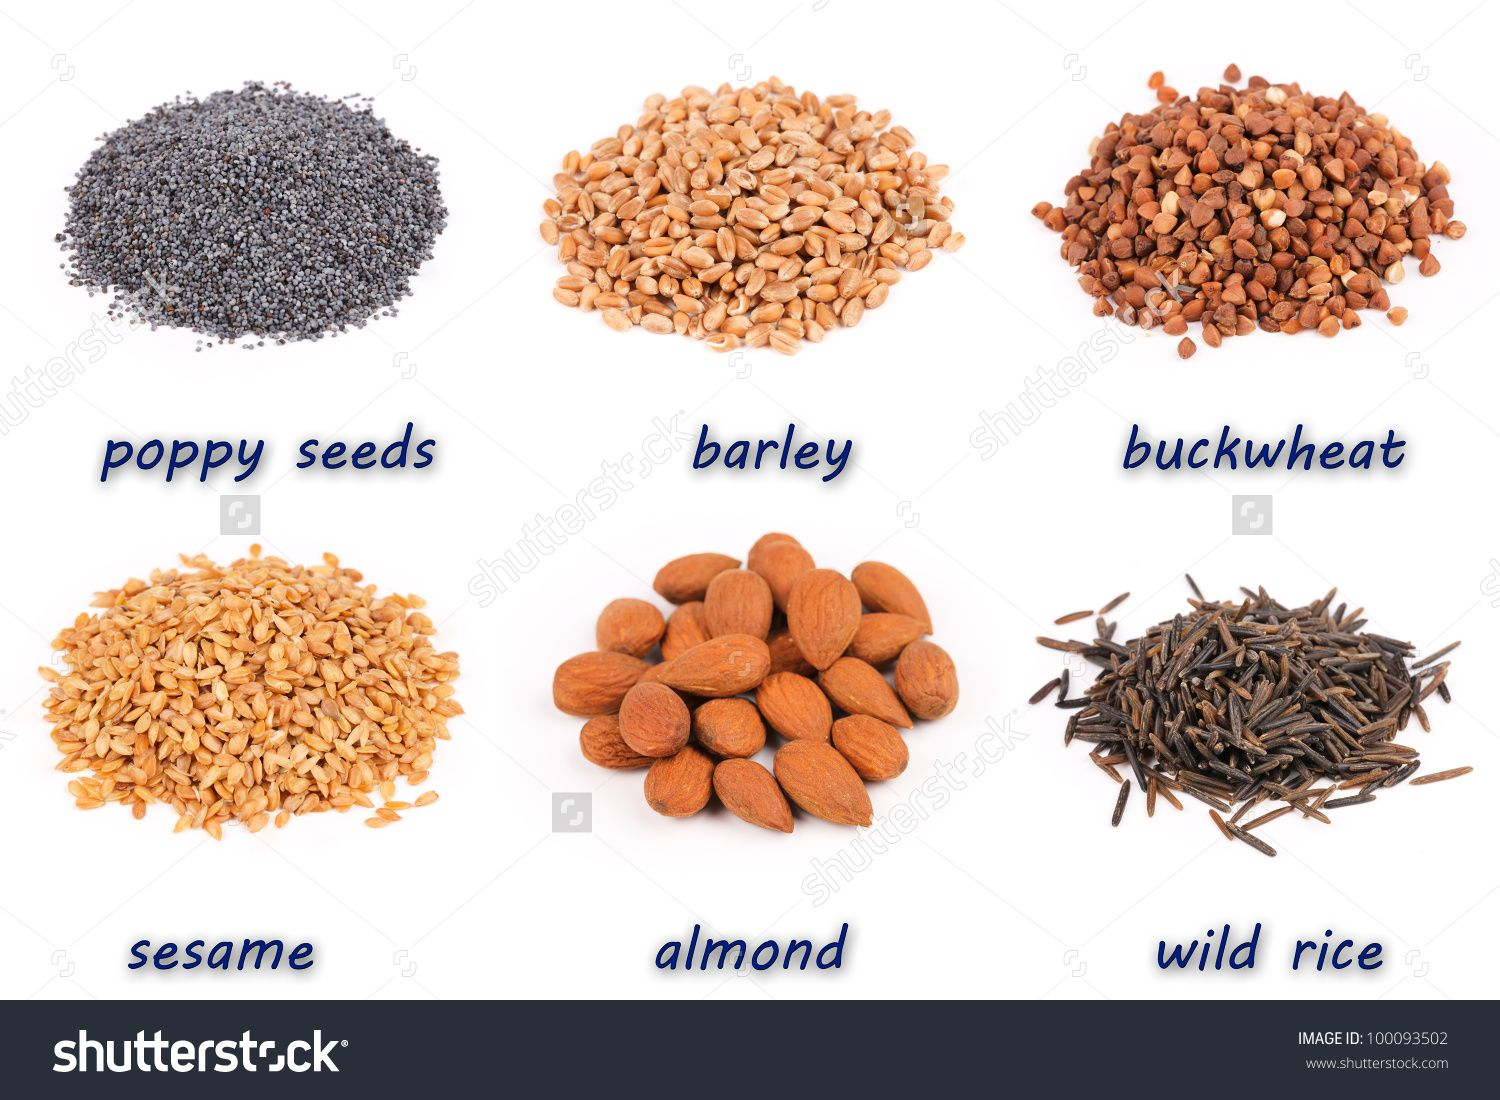 Examples of Protein Rich Foods Protein, Protein rich